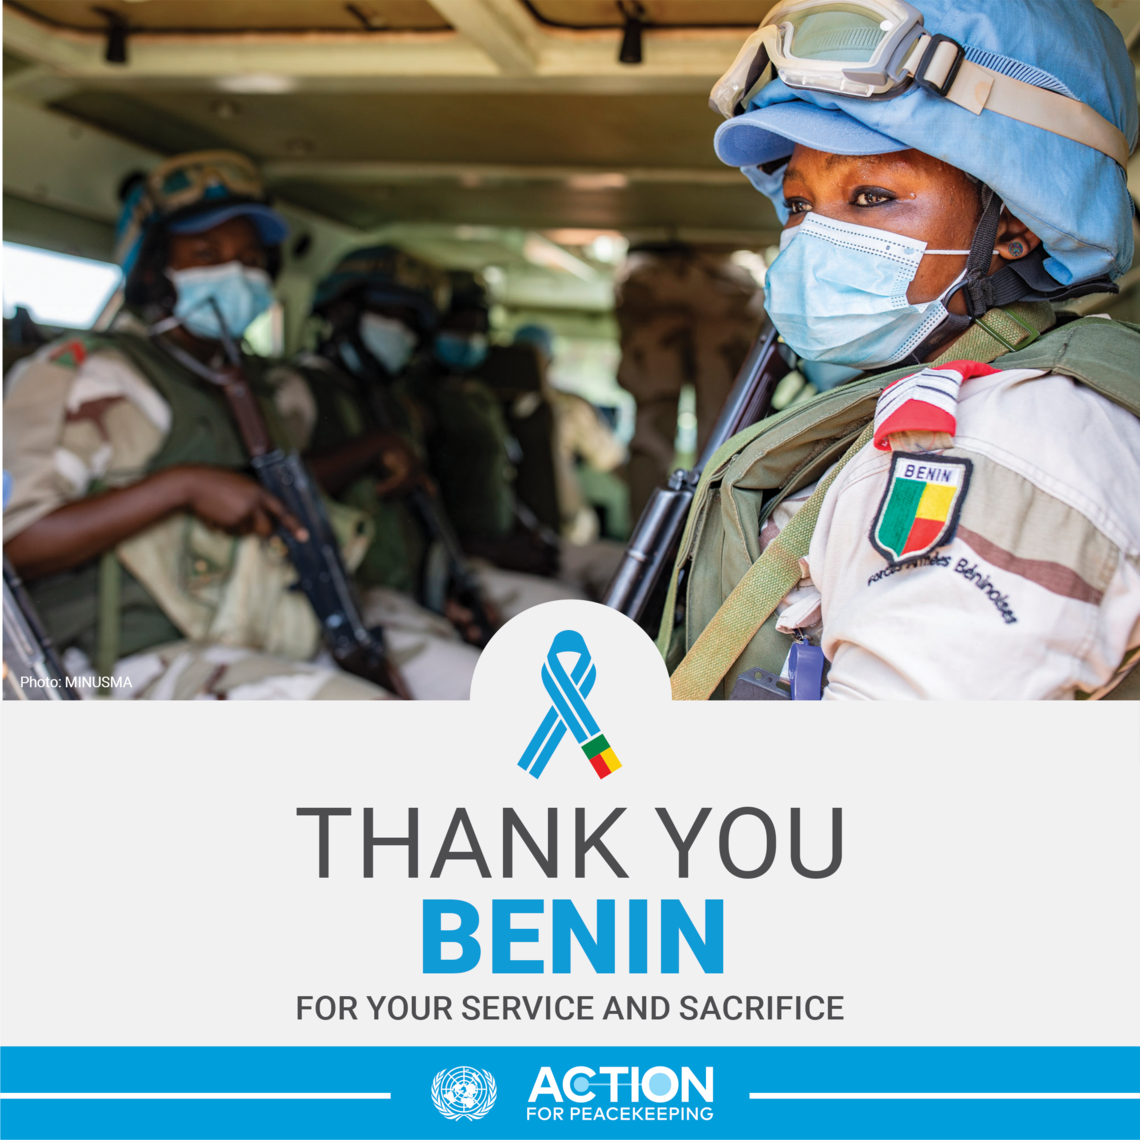 Thank you Benin for your service and sacrifice